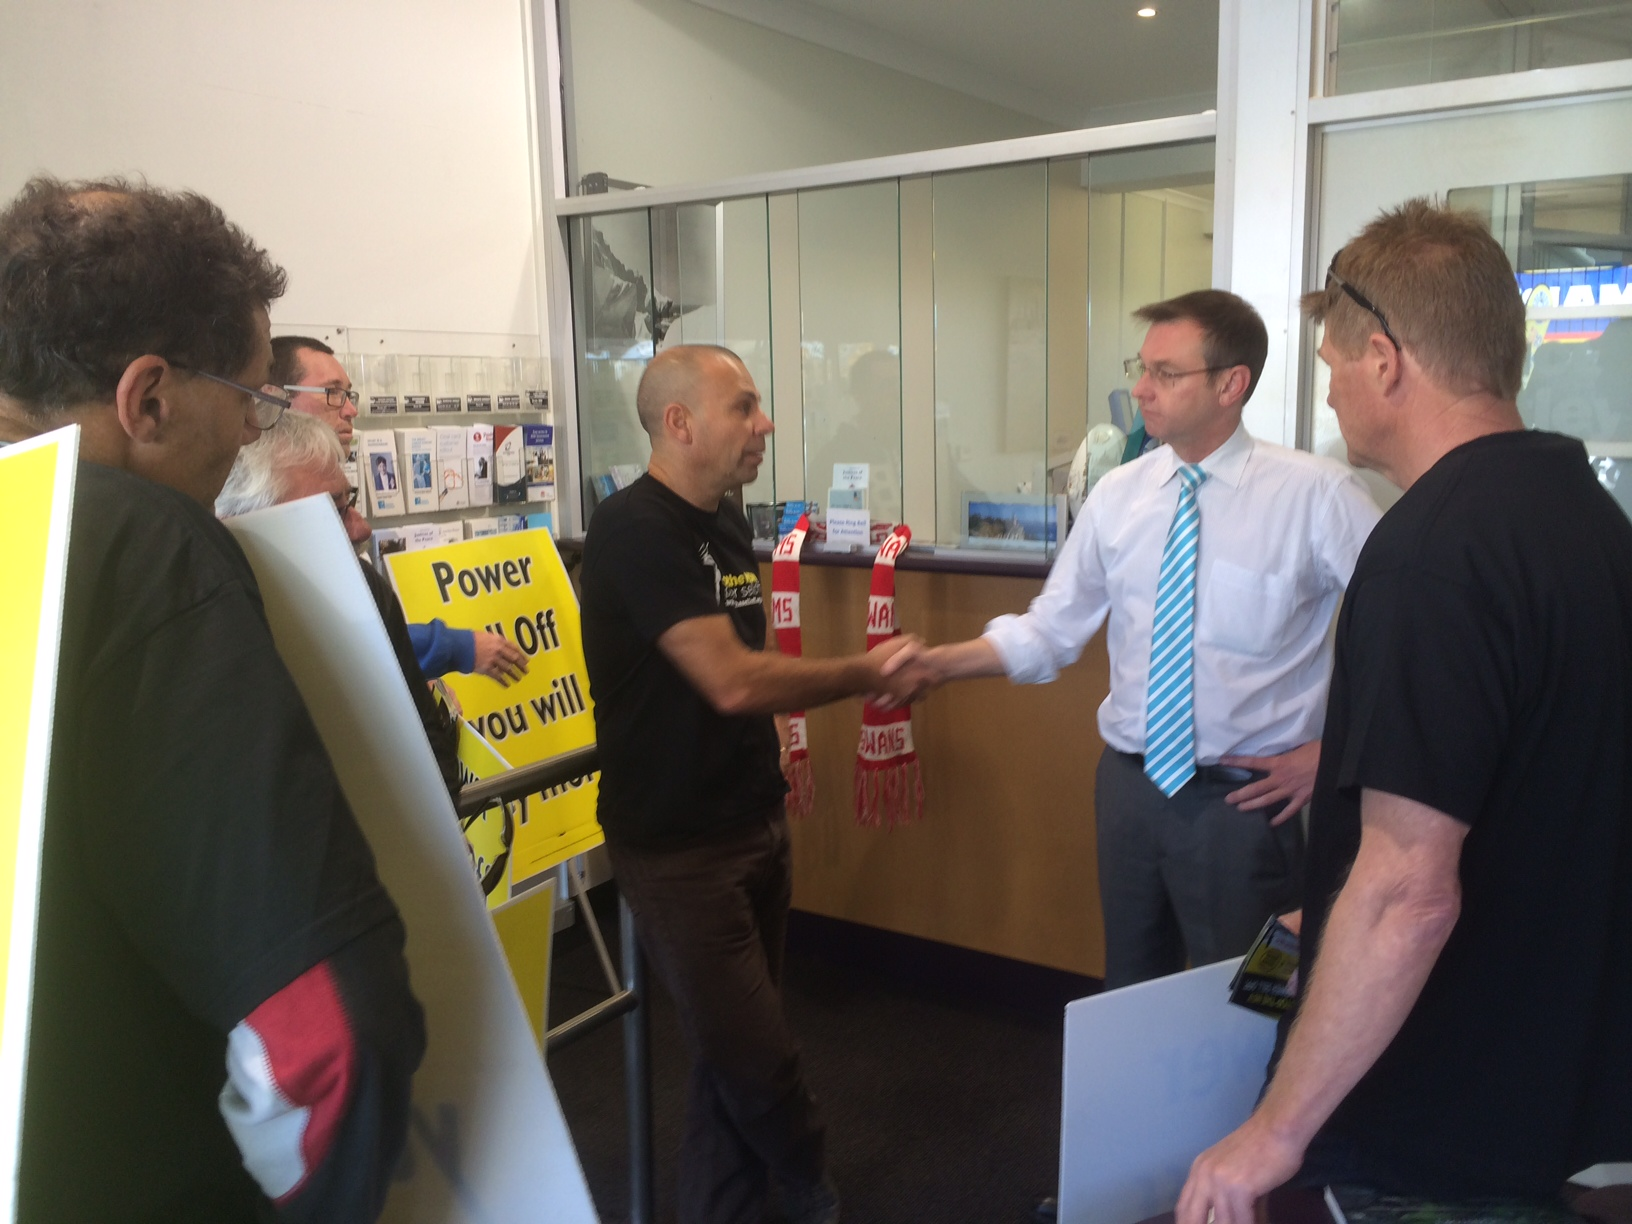 Coogee campaigns against electricity privatisation